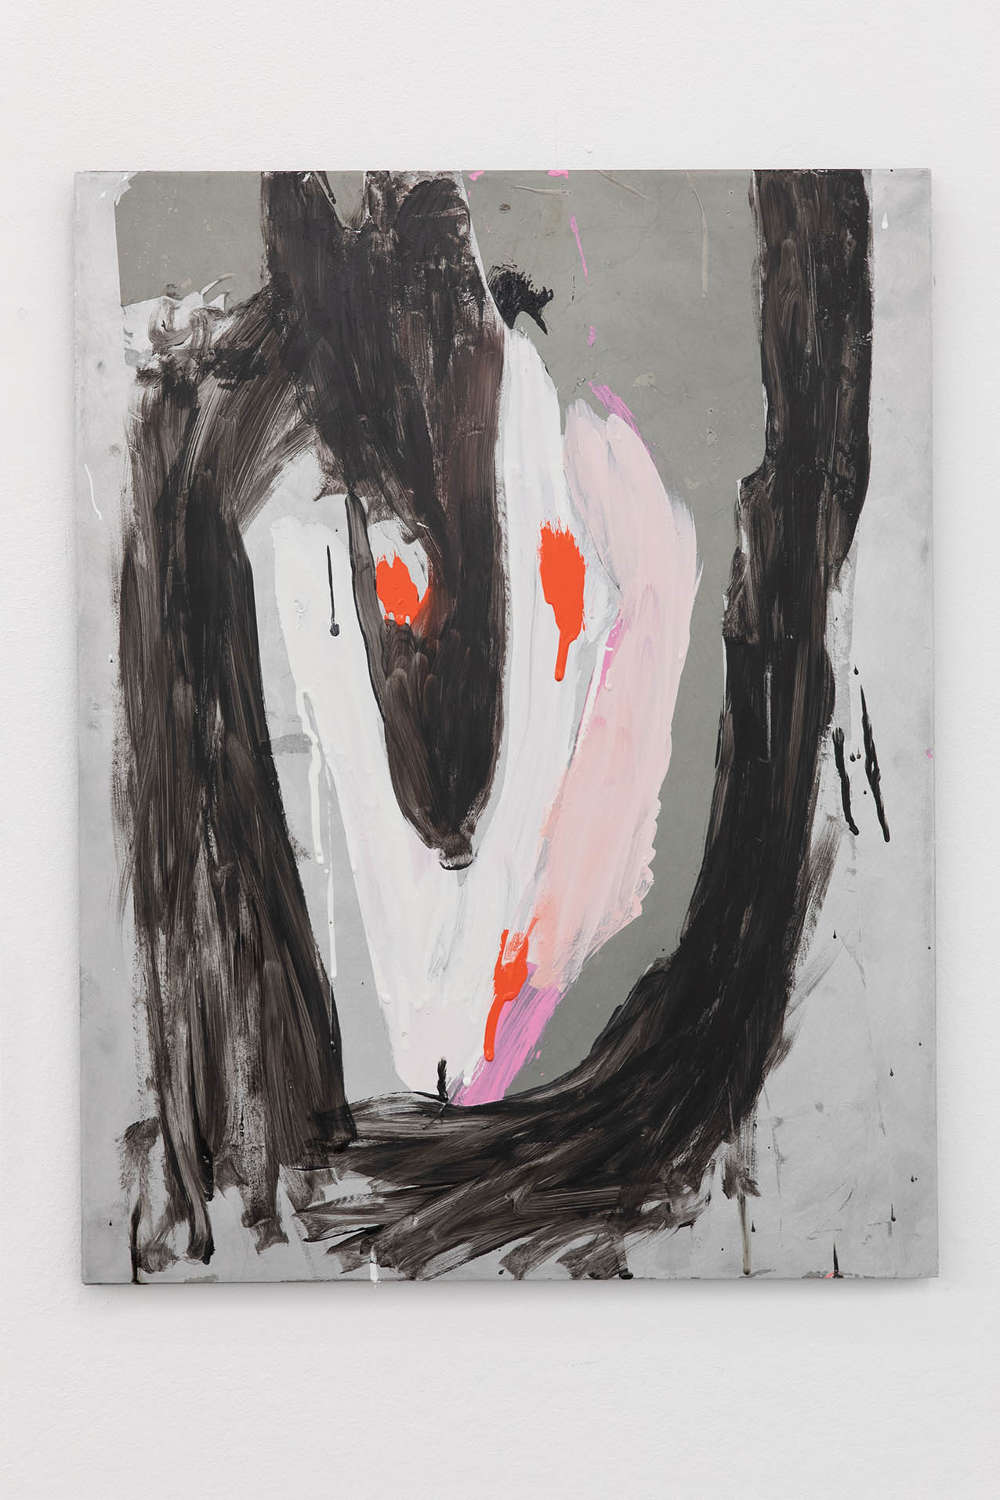 Nicolas Roggy, Untitled, 2018. Gesso, acrylic medium, acrylic paint, pigments and oil-based paint on aluminium 52 x 40 x 1 cm (20.47 x 15.75 x .39 inches) Courtesy of the artist & VNH Gallery. Photo: Diane Arques